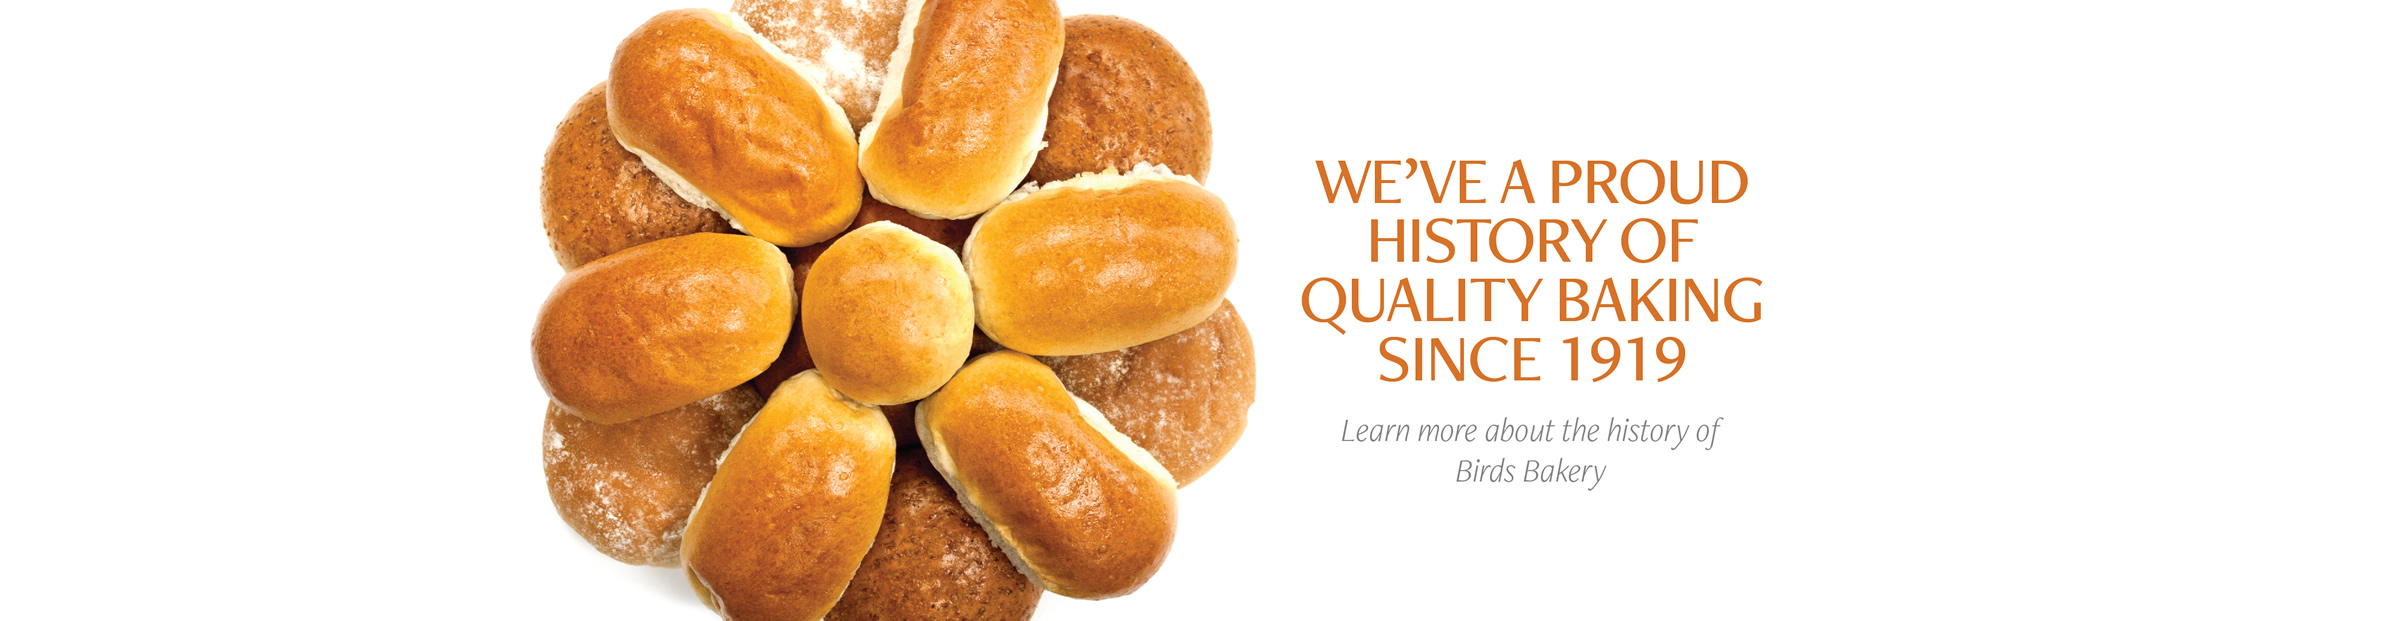 We've a proud history of Quality baking since 1919. Learn more about our history